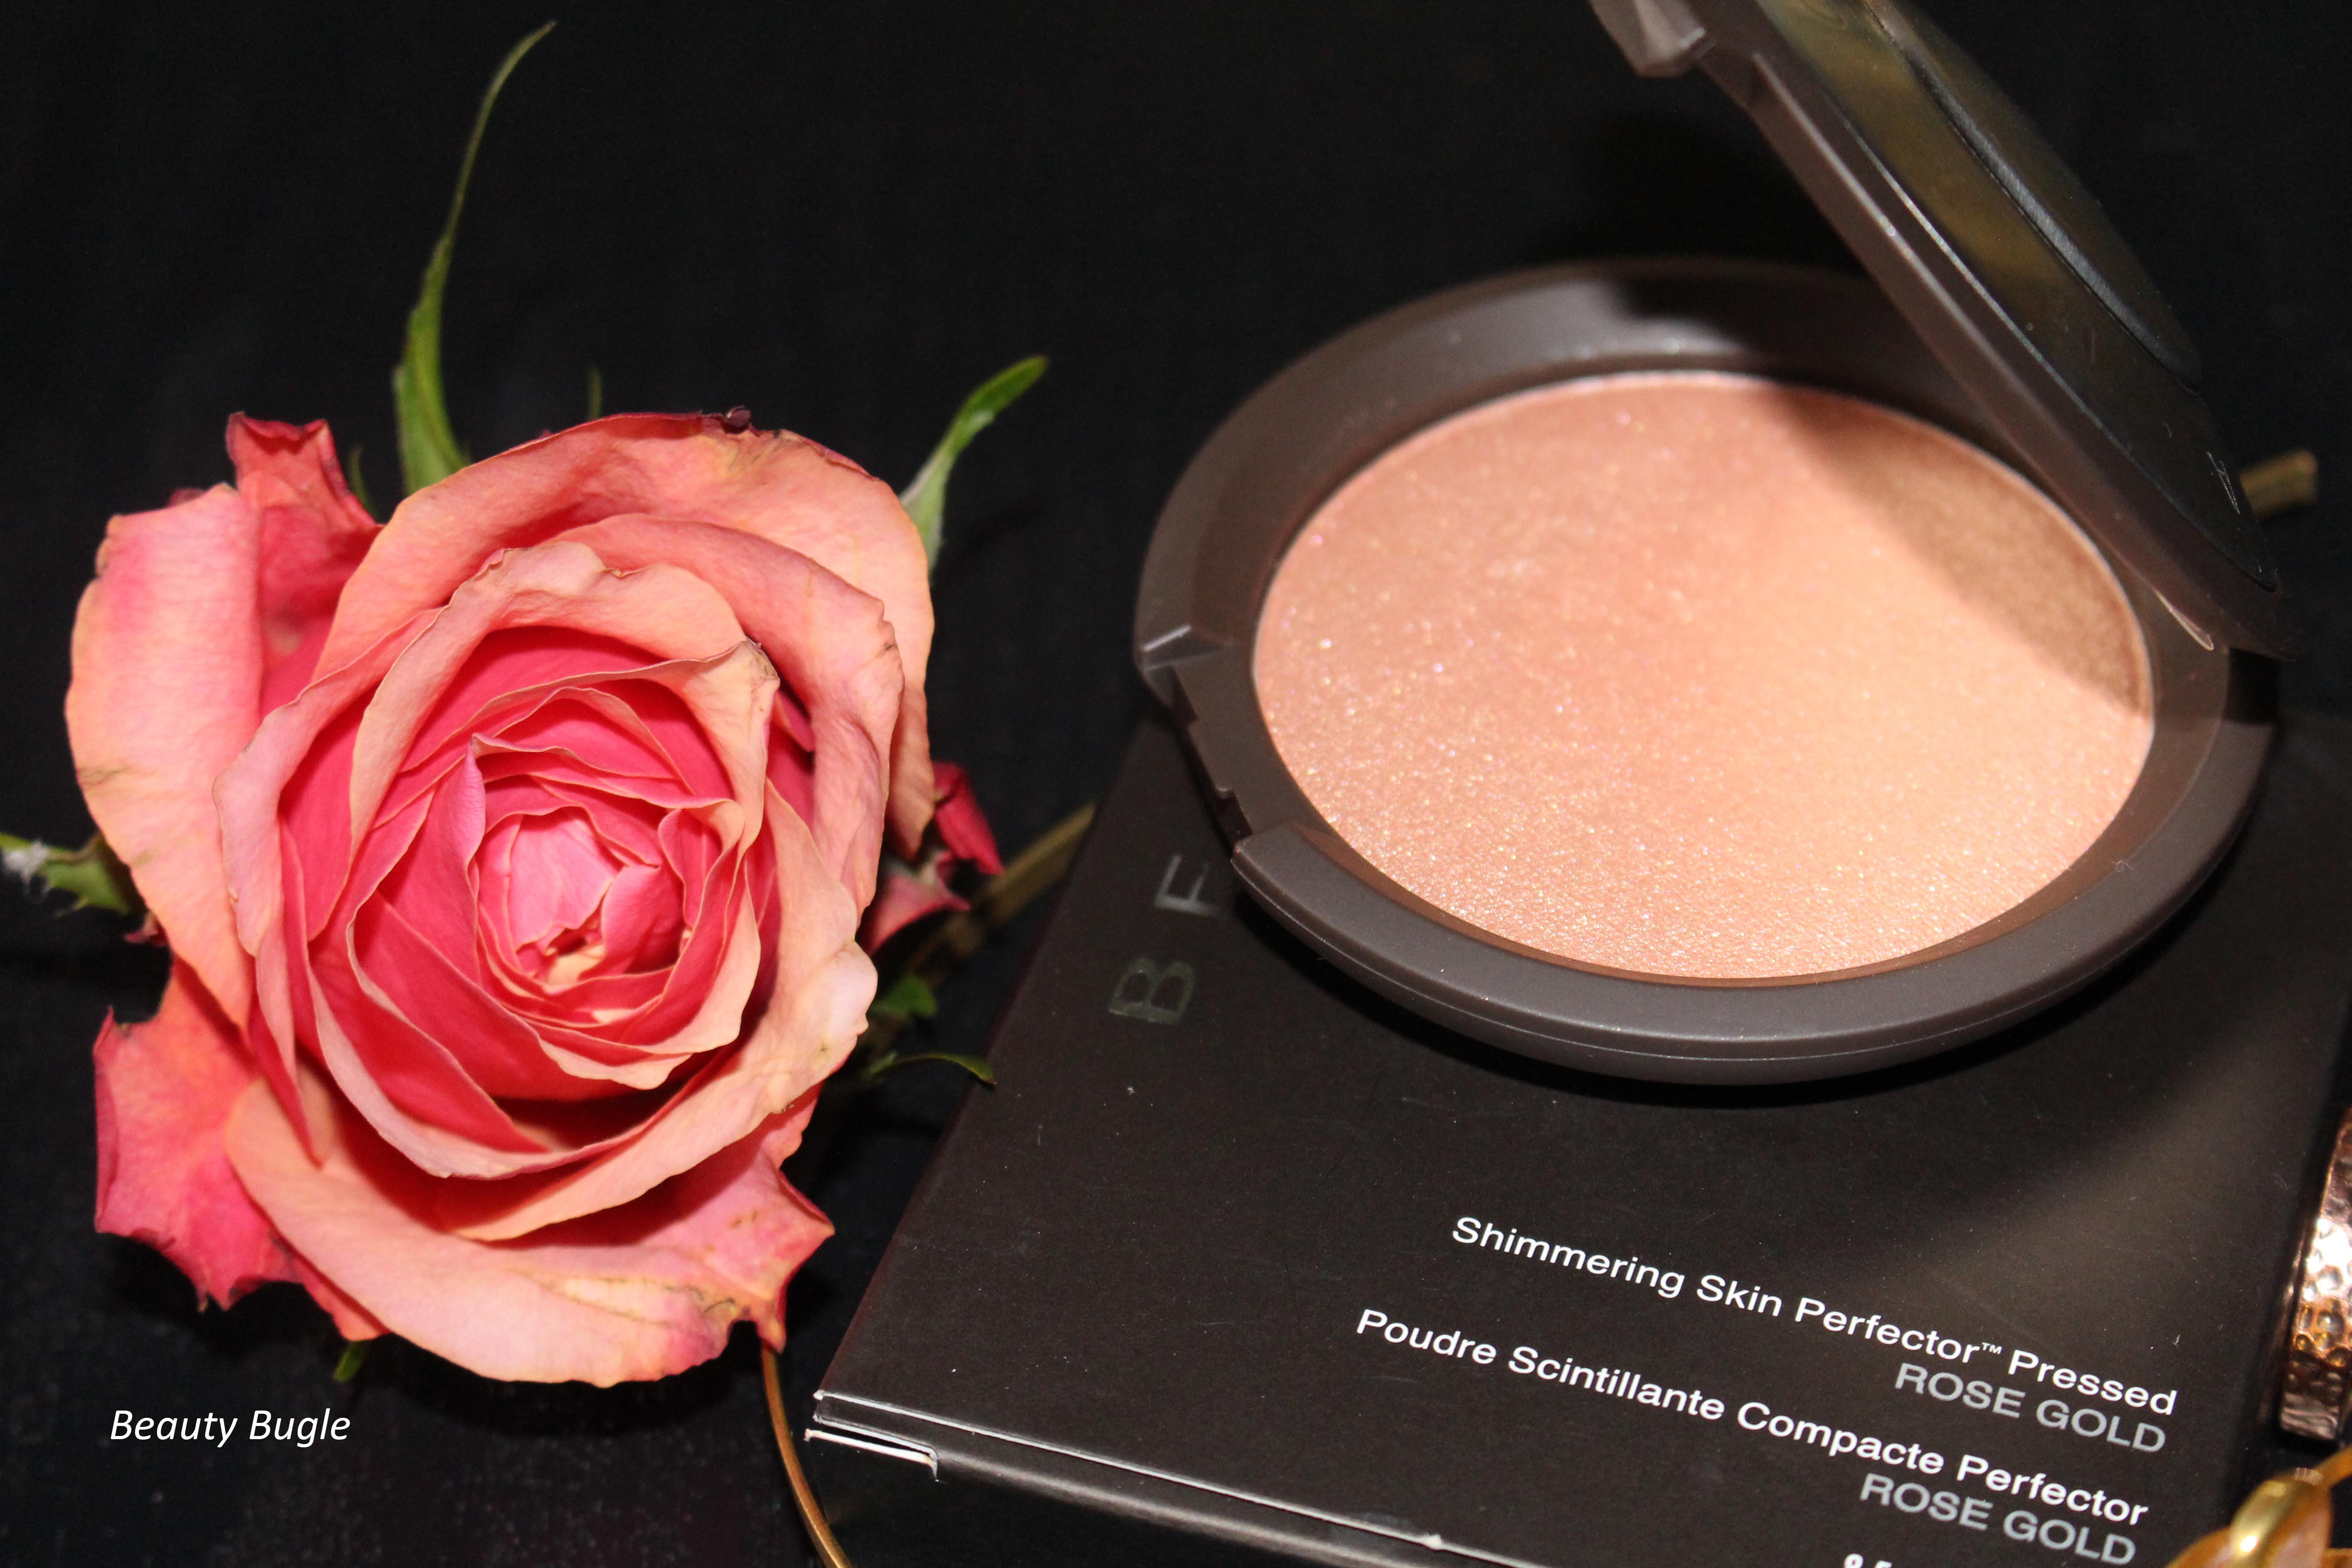 Becca Shimmering Skin Perfector in Rose Gold.